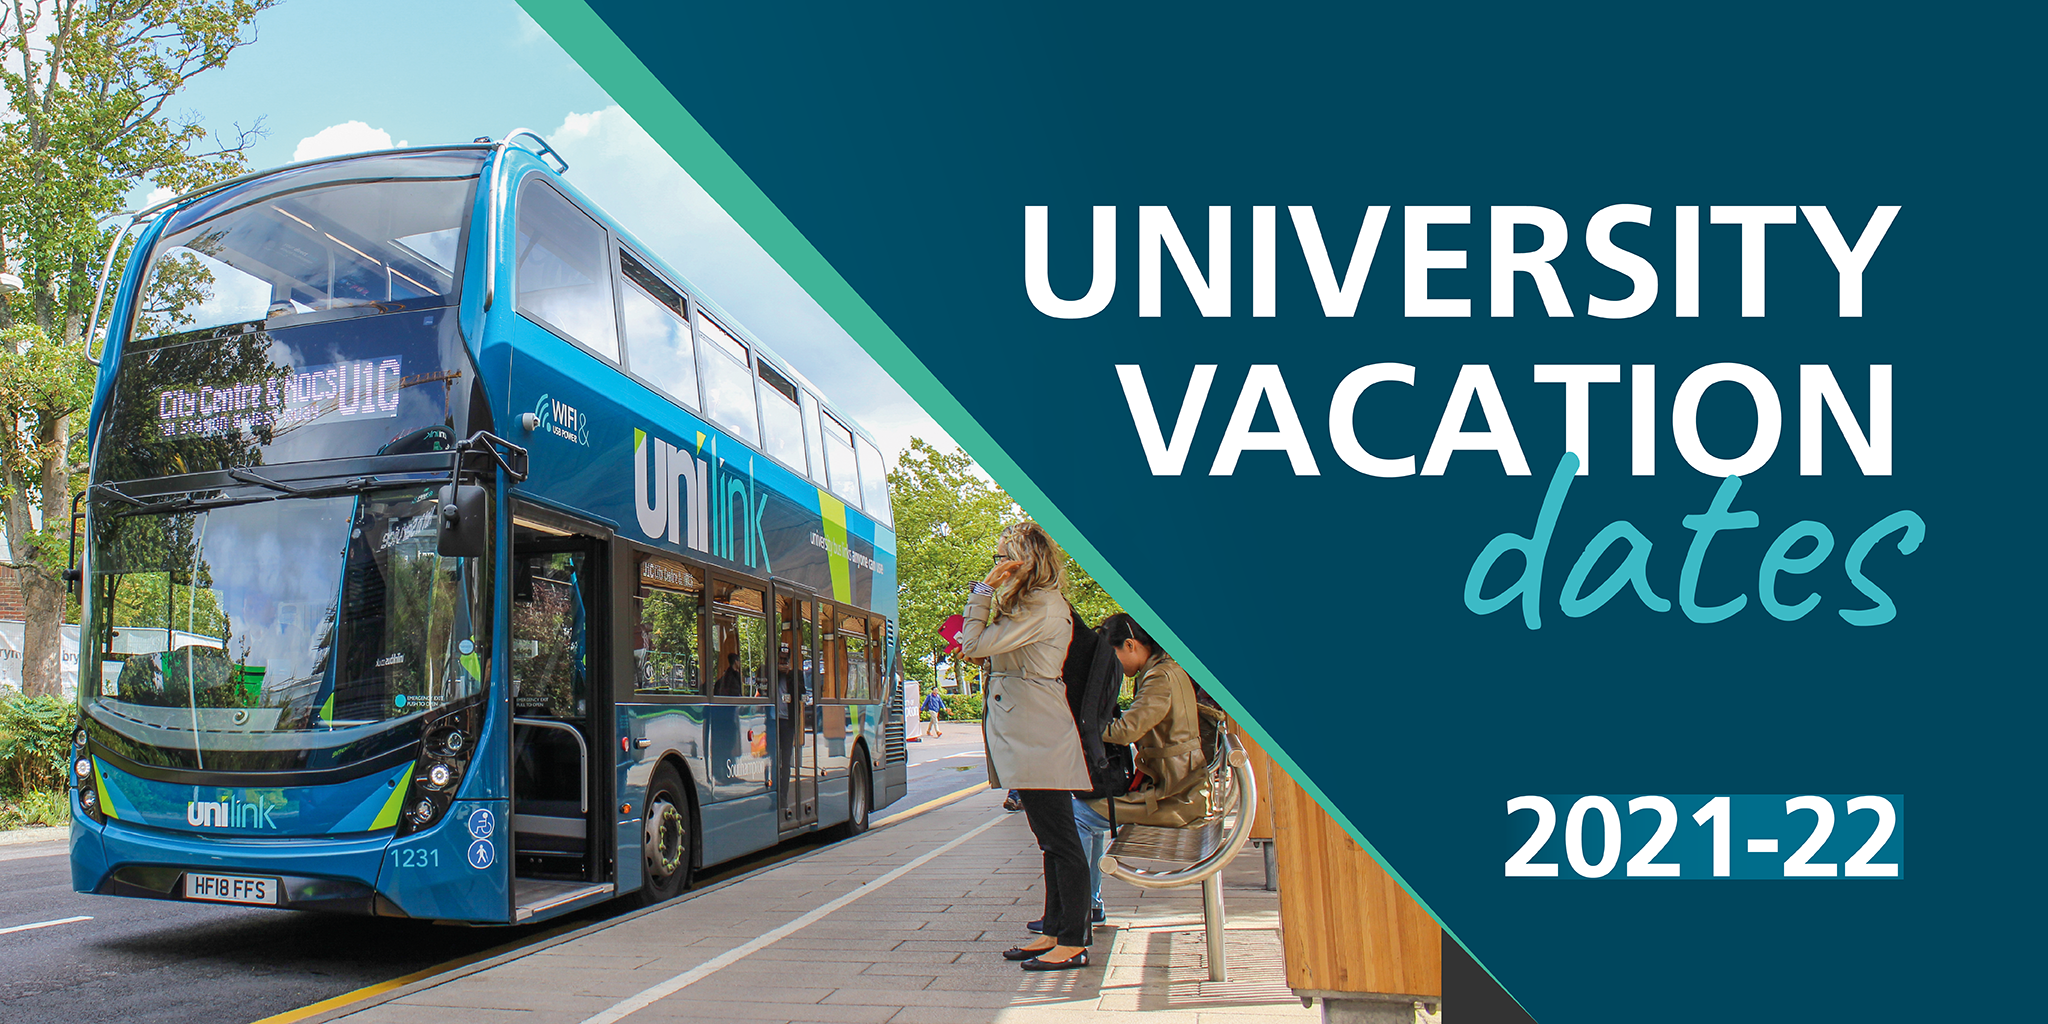 A promotional image for university term and vacation dates